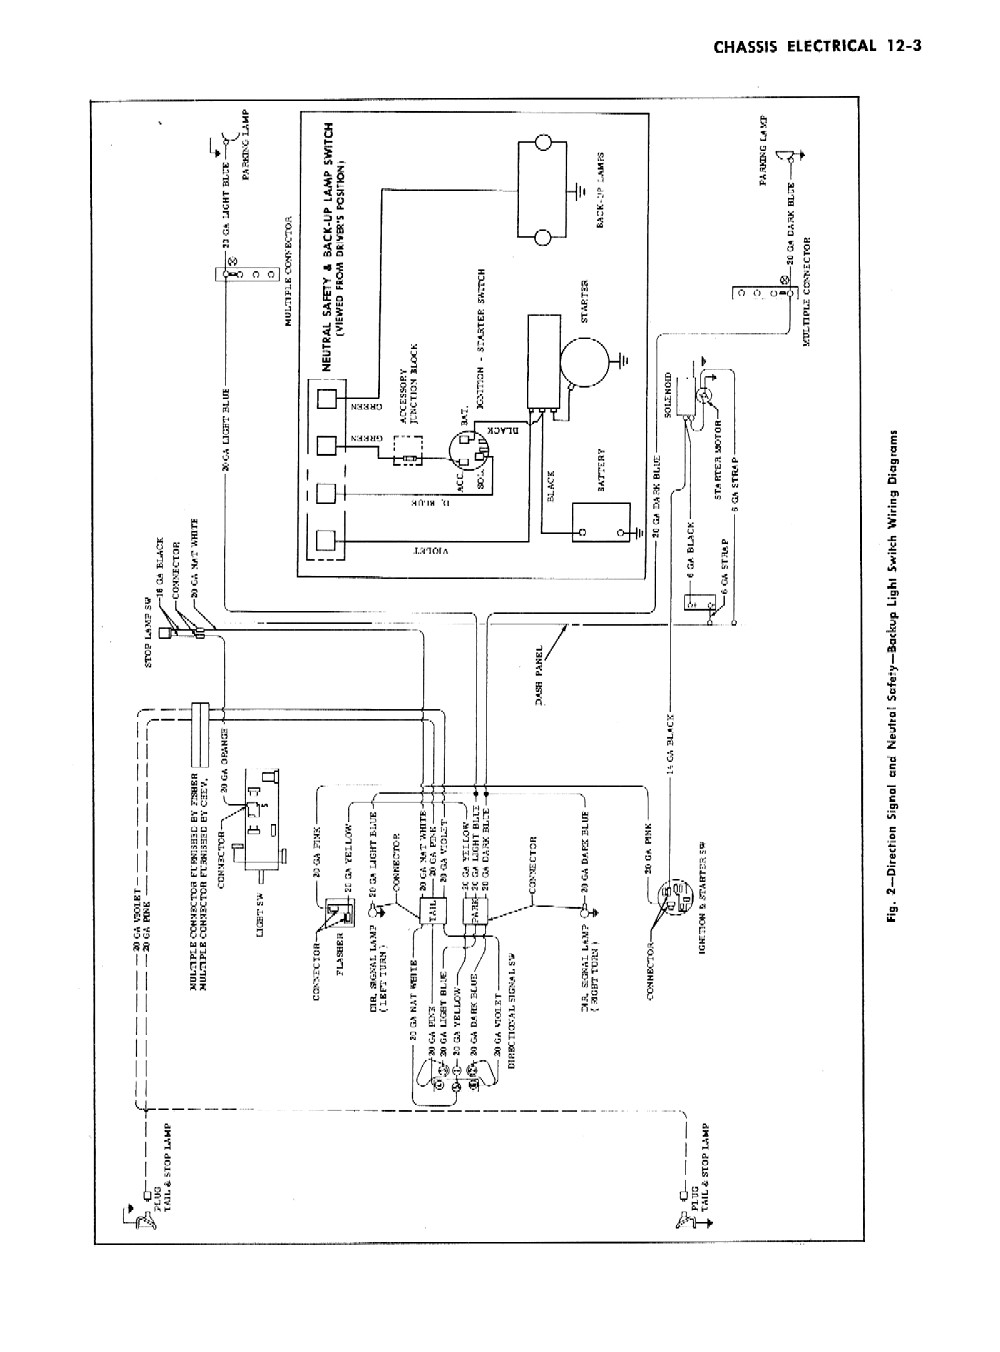 1955 Chevy Wiring Kits Auto Electrical Wiring Diagram